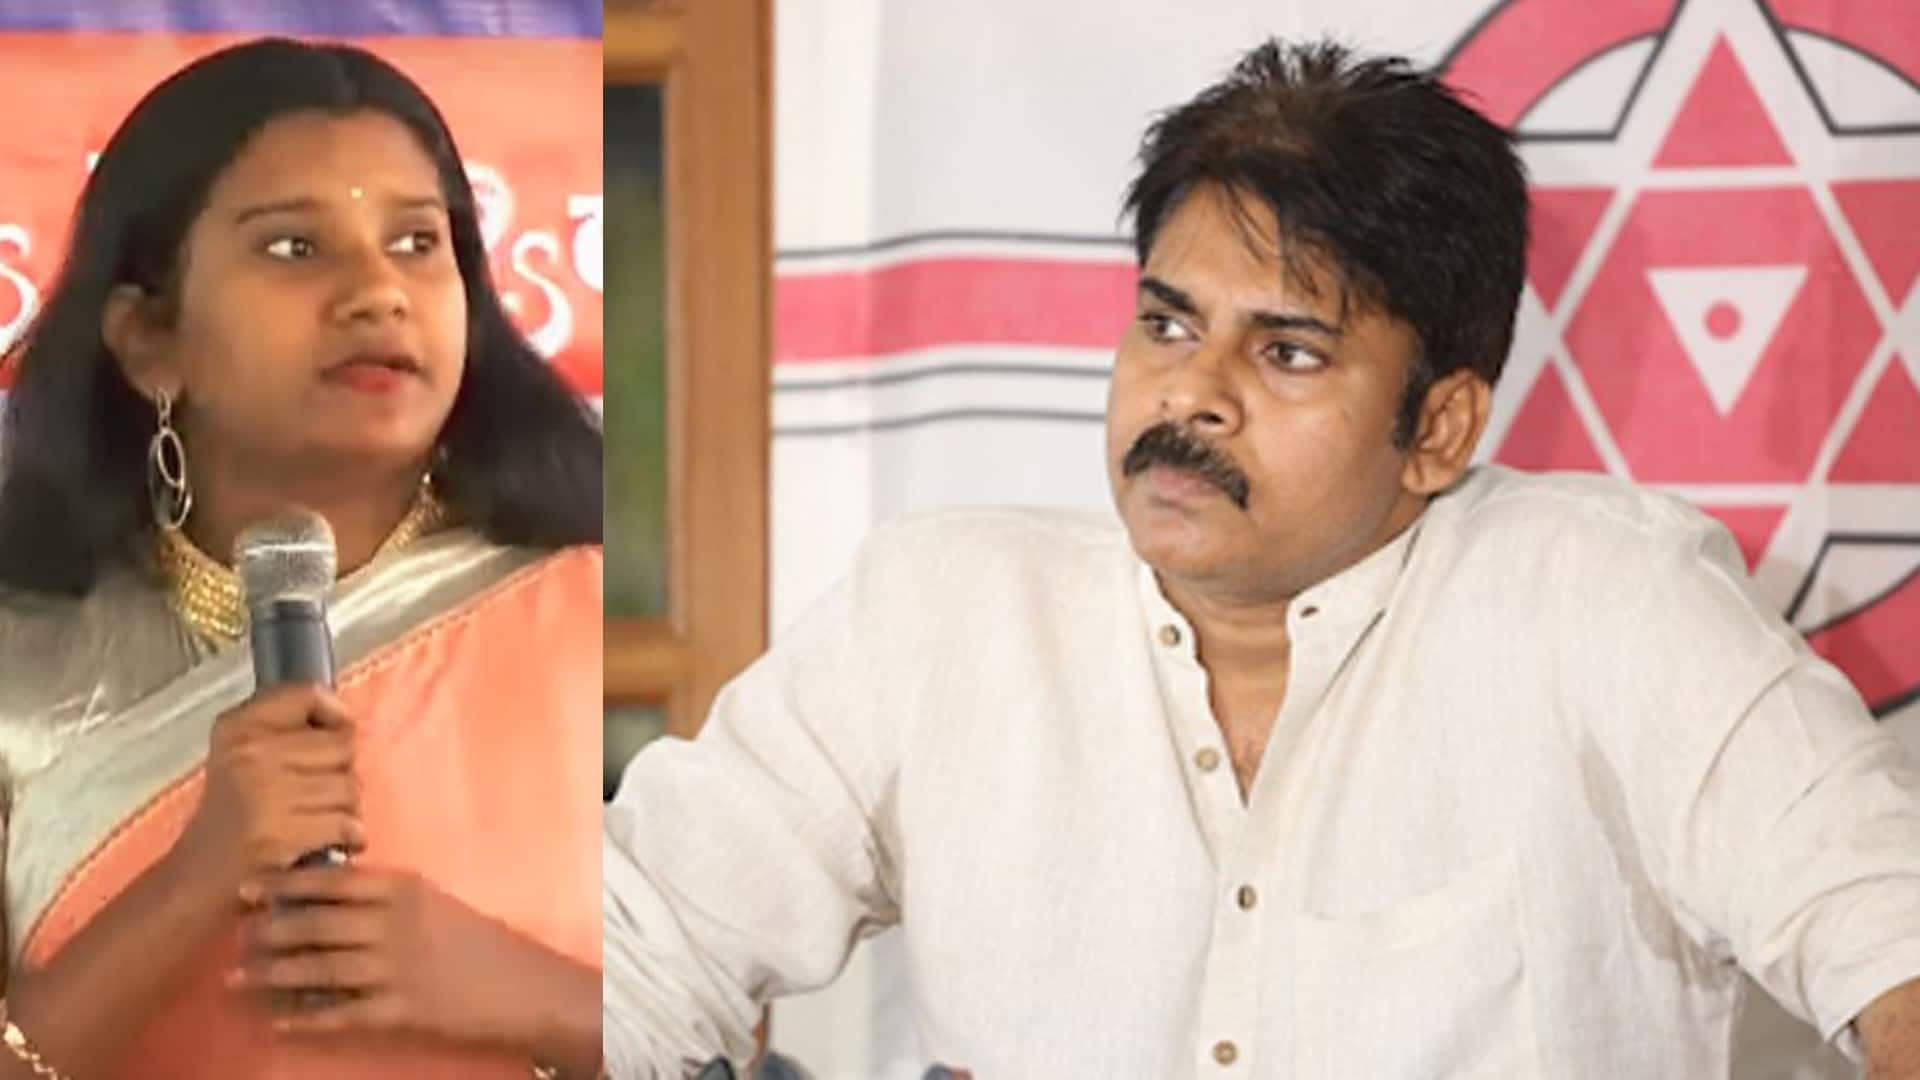 SHOCKING: This actress claims that Pawan Kalyan needs Bengali girls for massage